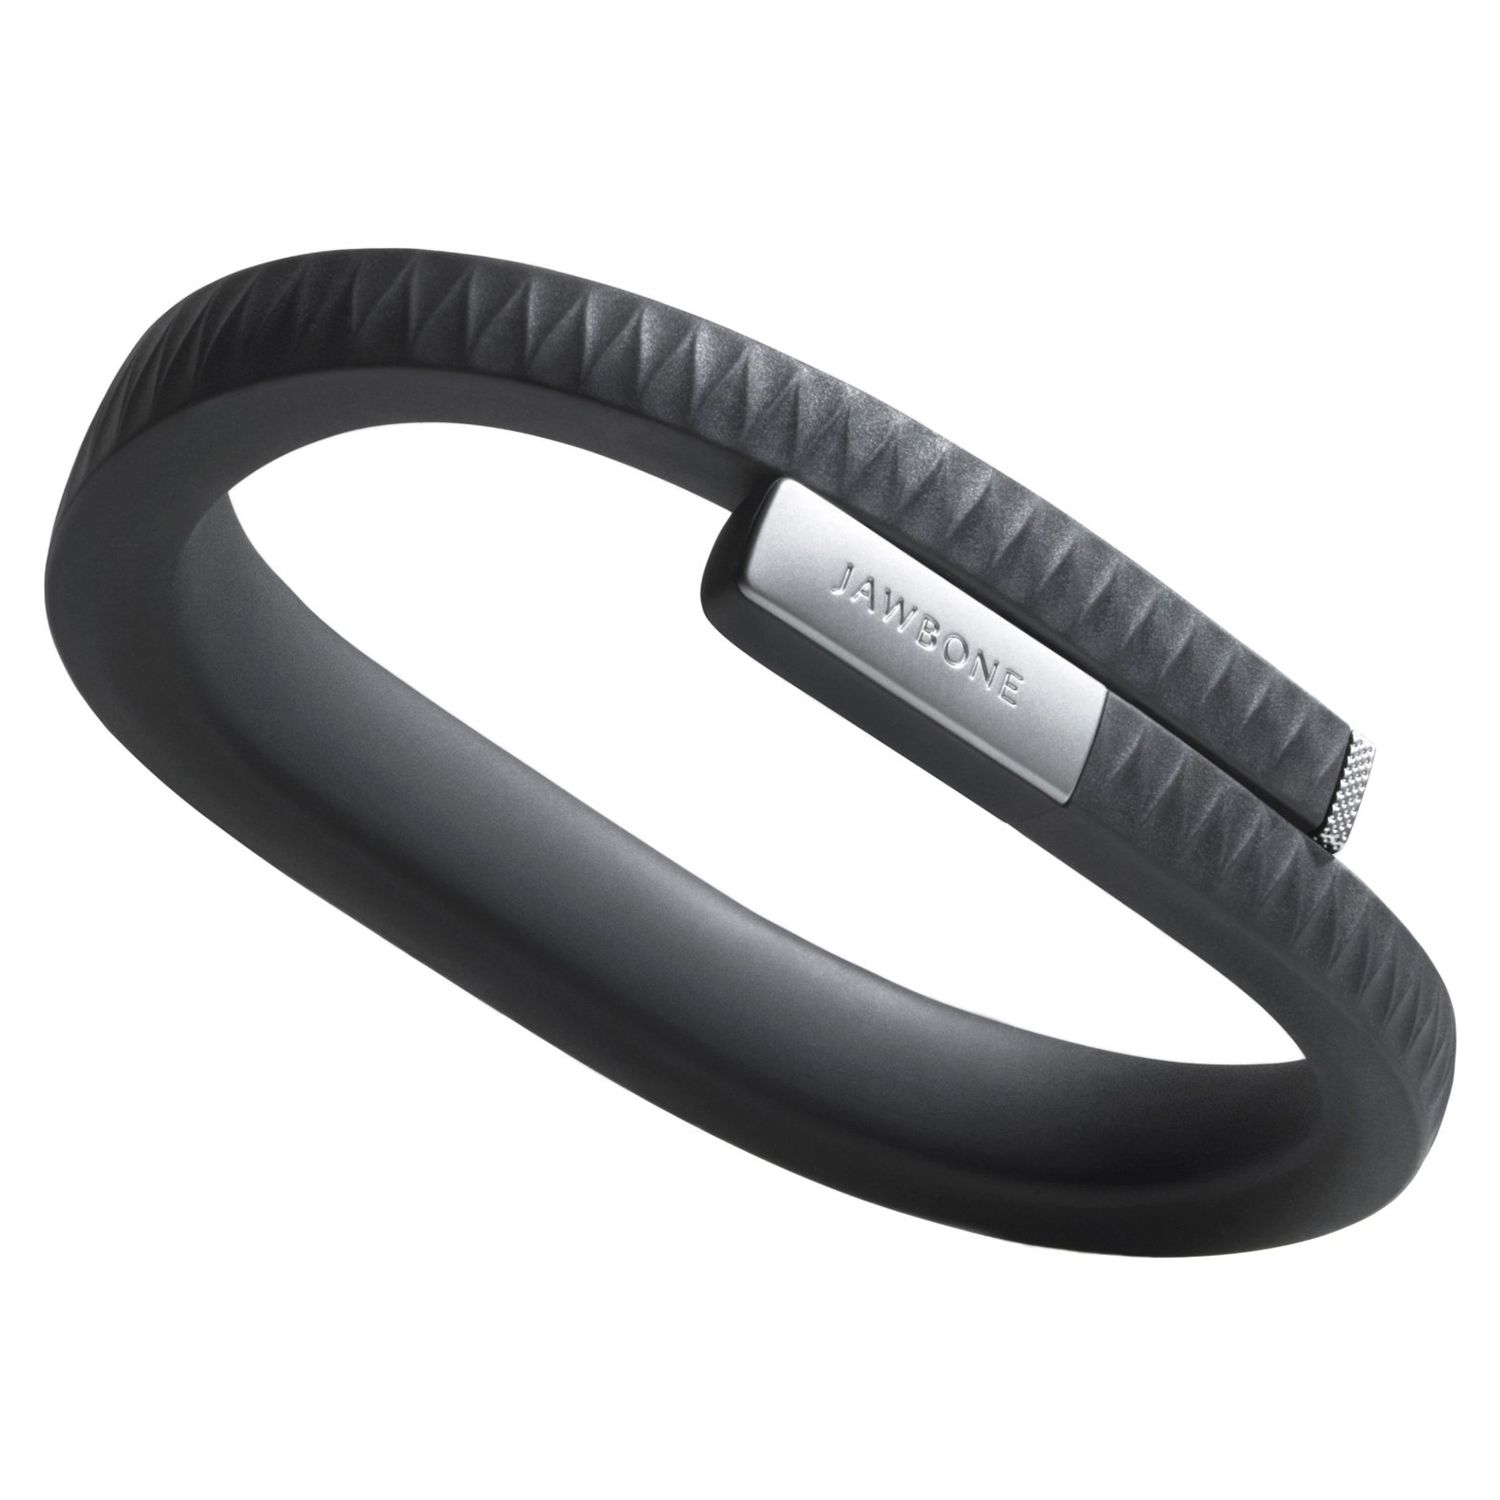 Activity Trackers - Jawbone Up24: A great fitness tracker with ...